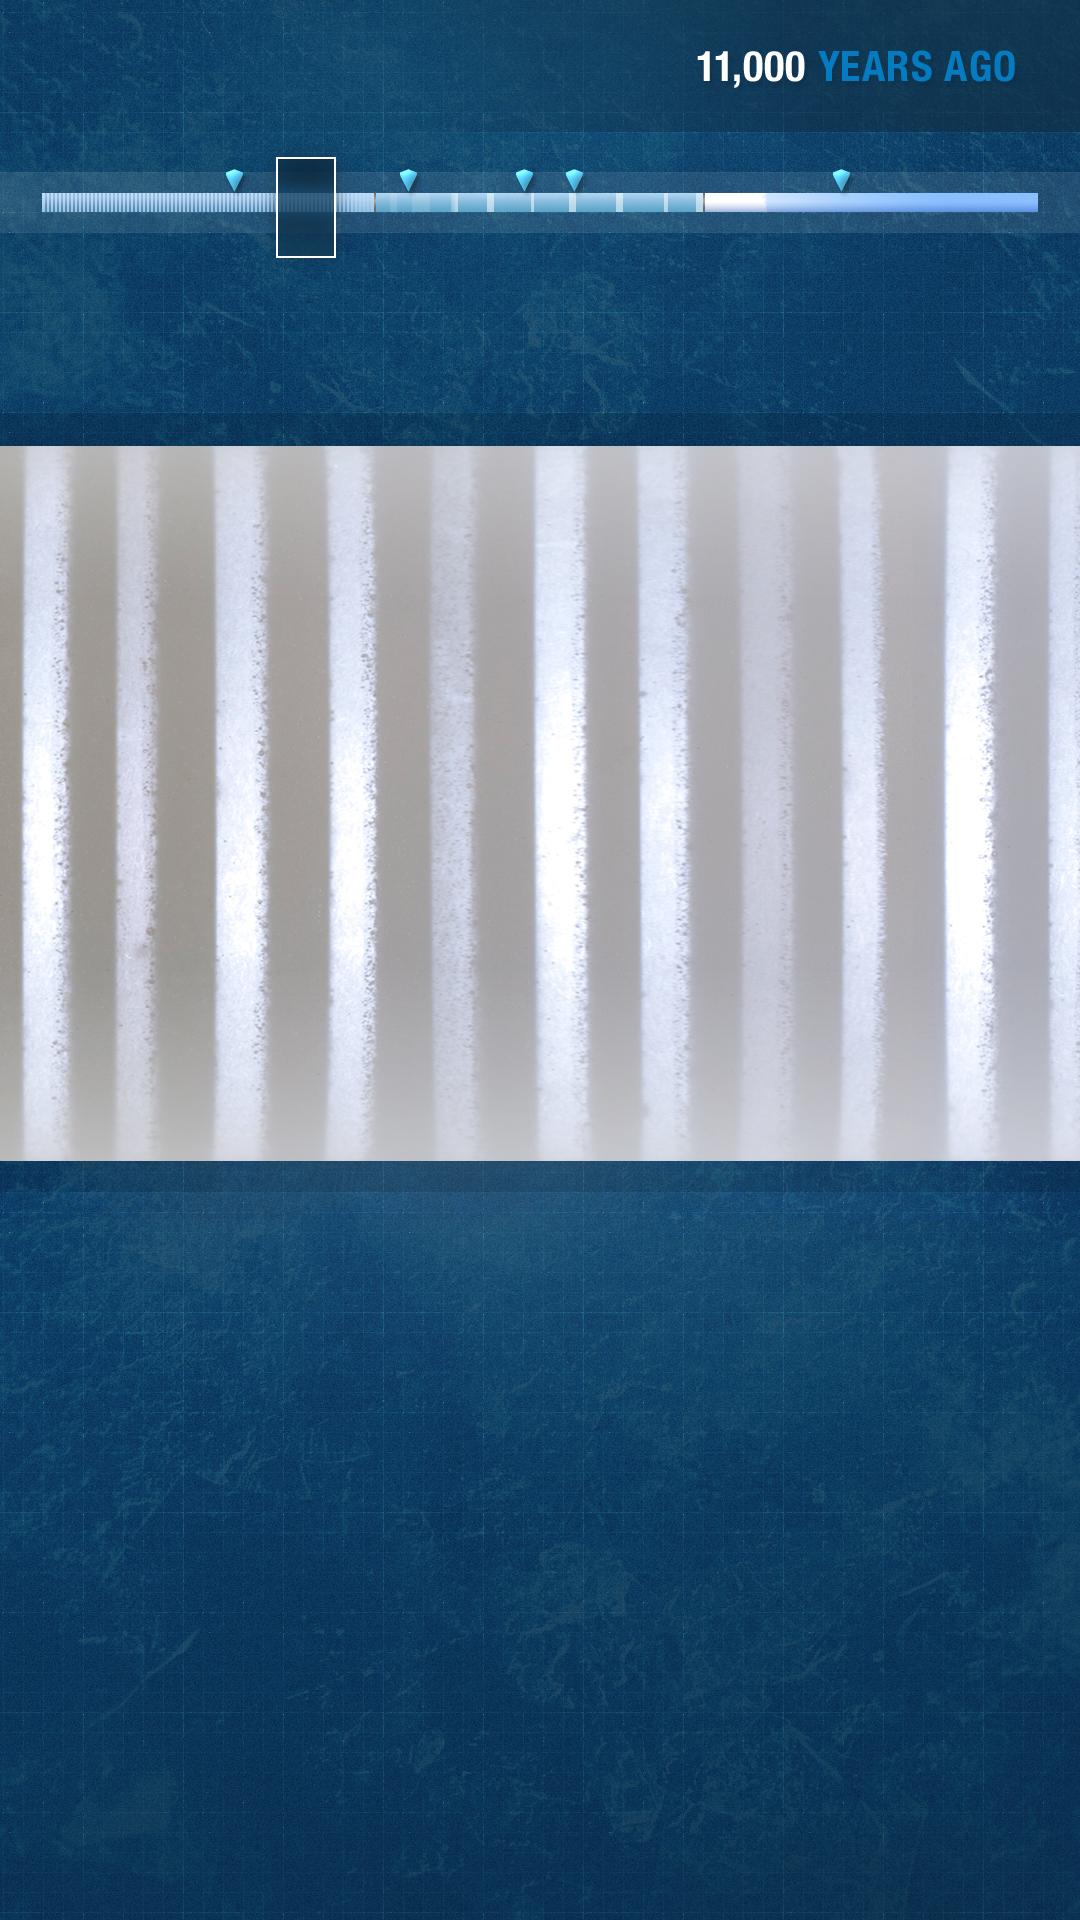 When not over a specific checkpoint, only the ice core is shown.